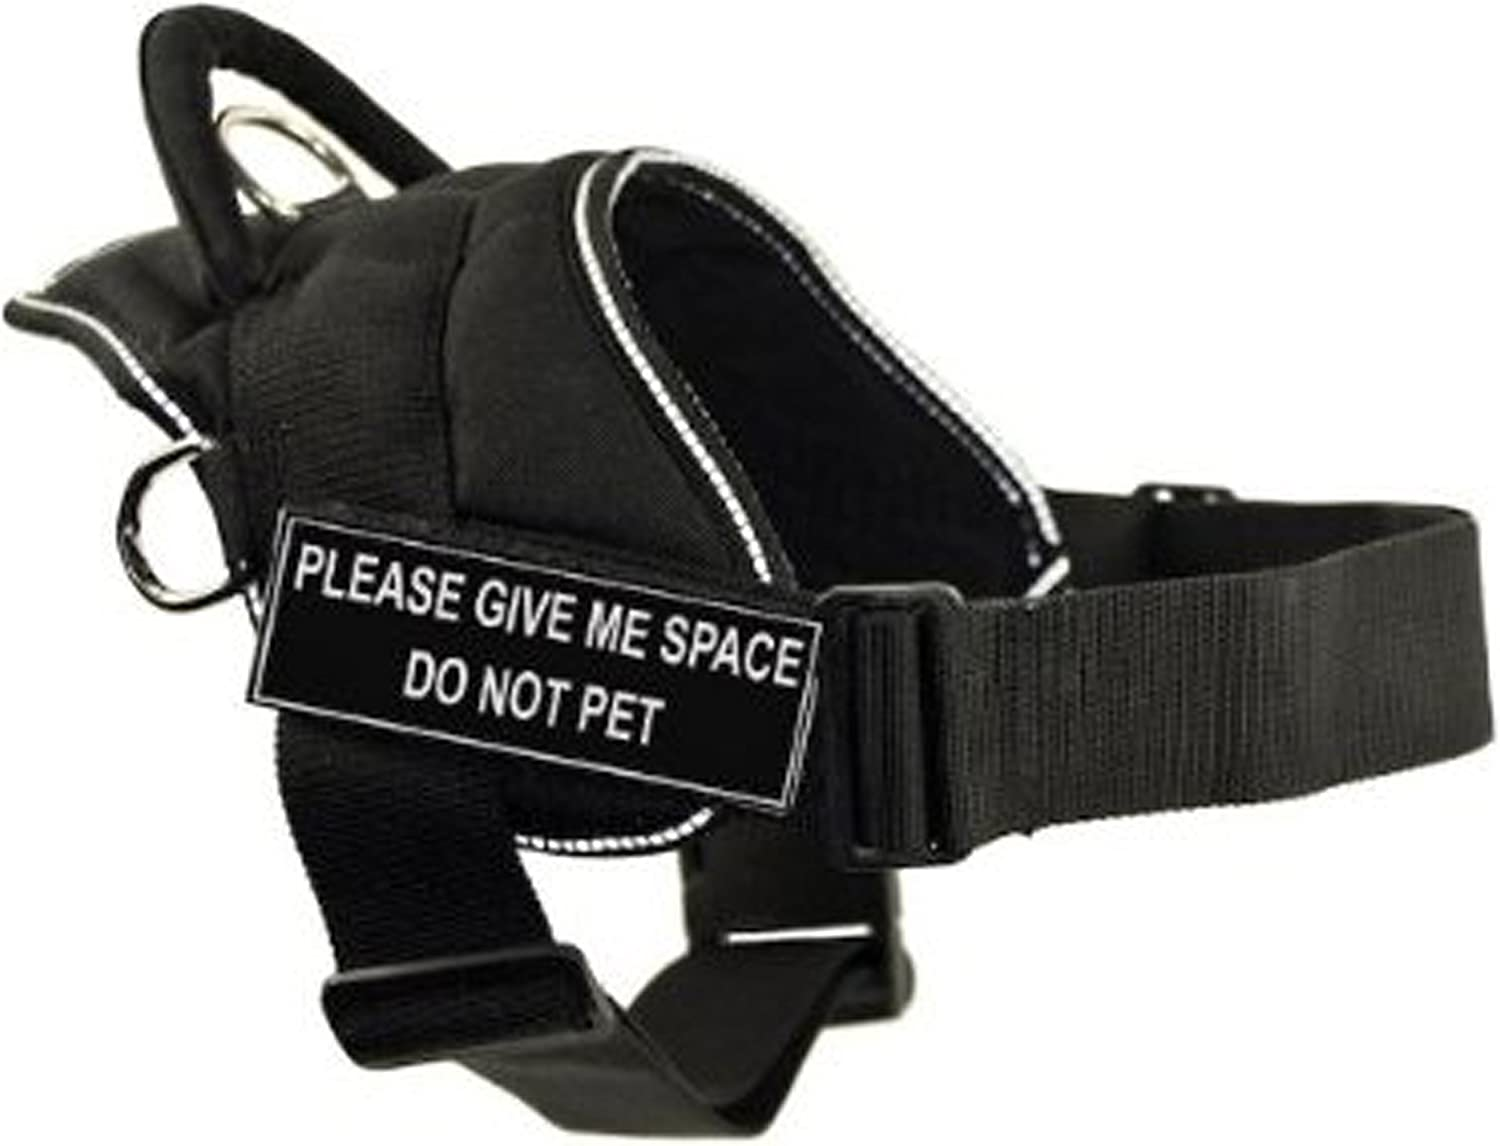 Dean & Tyler DT Fun Works Harness, Please Give Me Space Do Not Pet, Black With Reflective Trim, XSmall  Fits Girth Size  20Inch to 23Inch